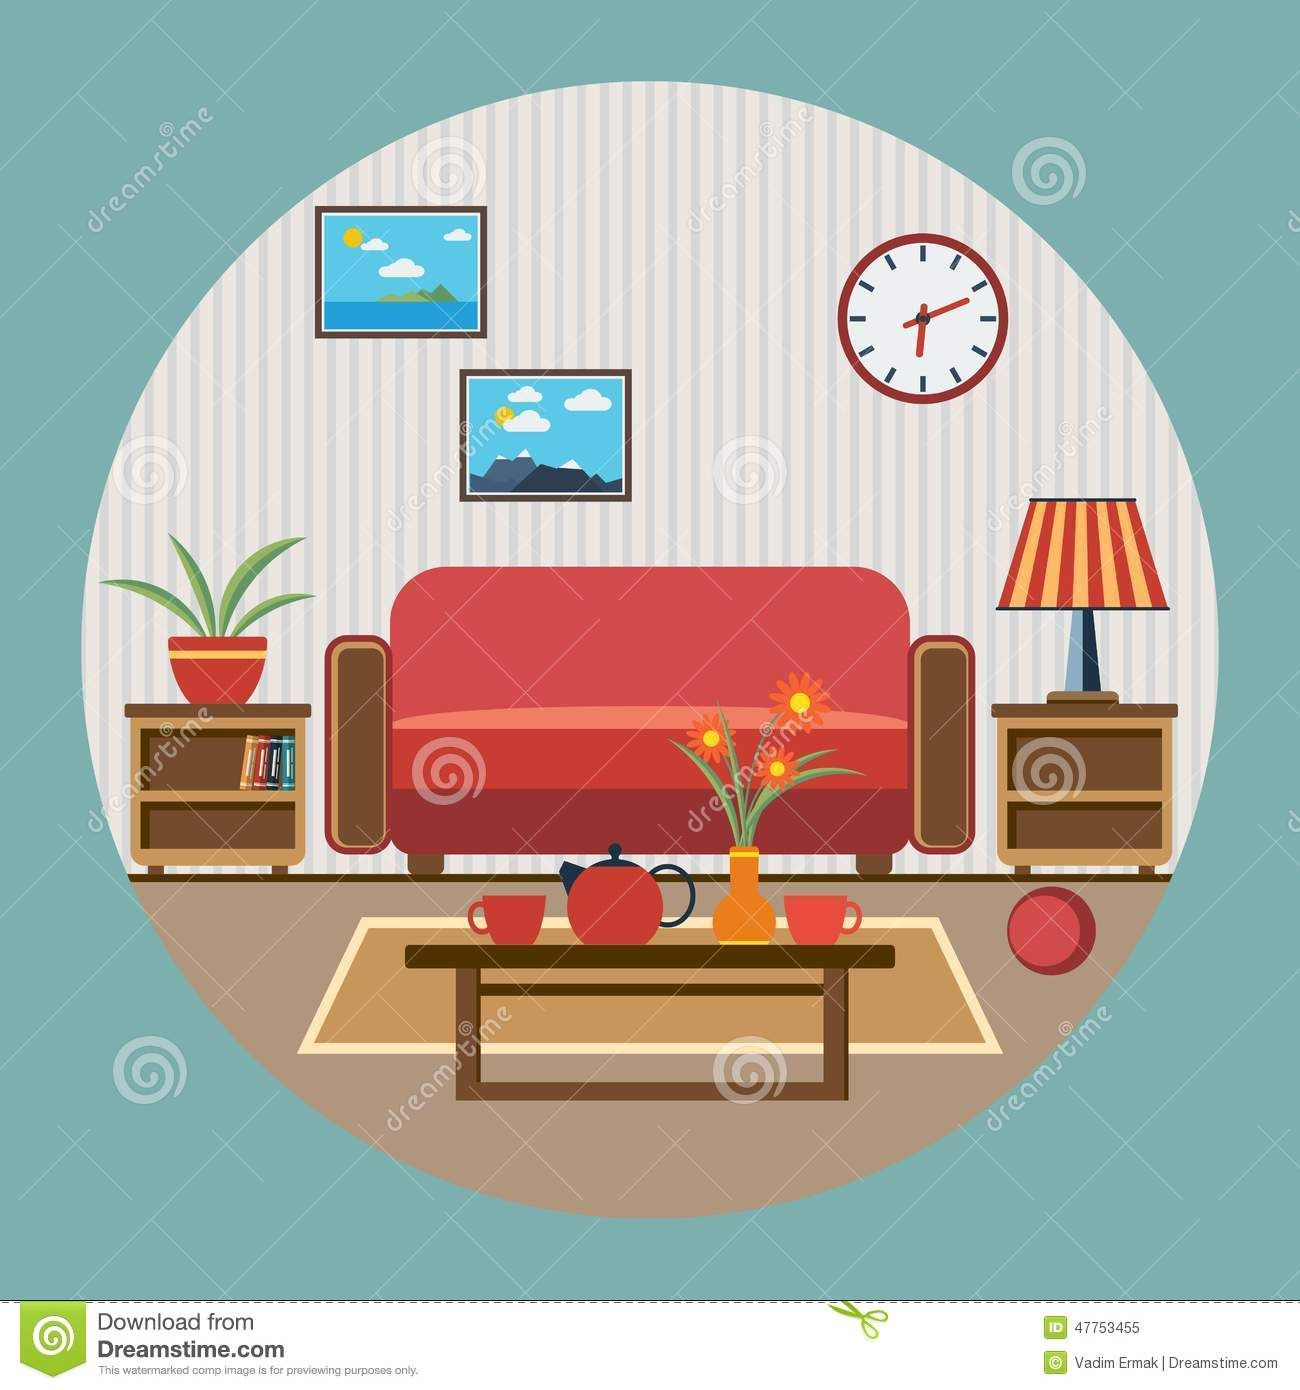 All rooms in the house rooms of homes vector art image illustration - Living Room Illustration Google Search